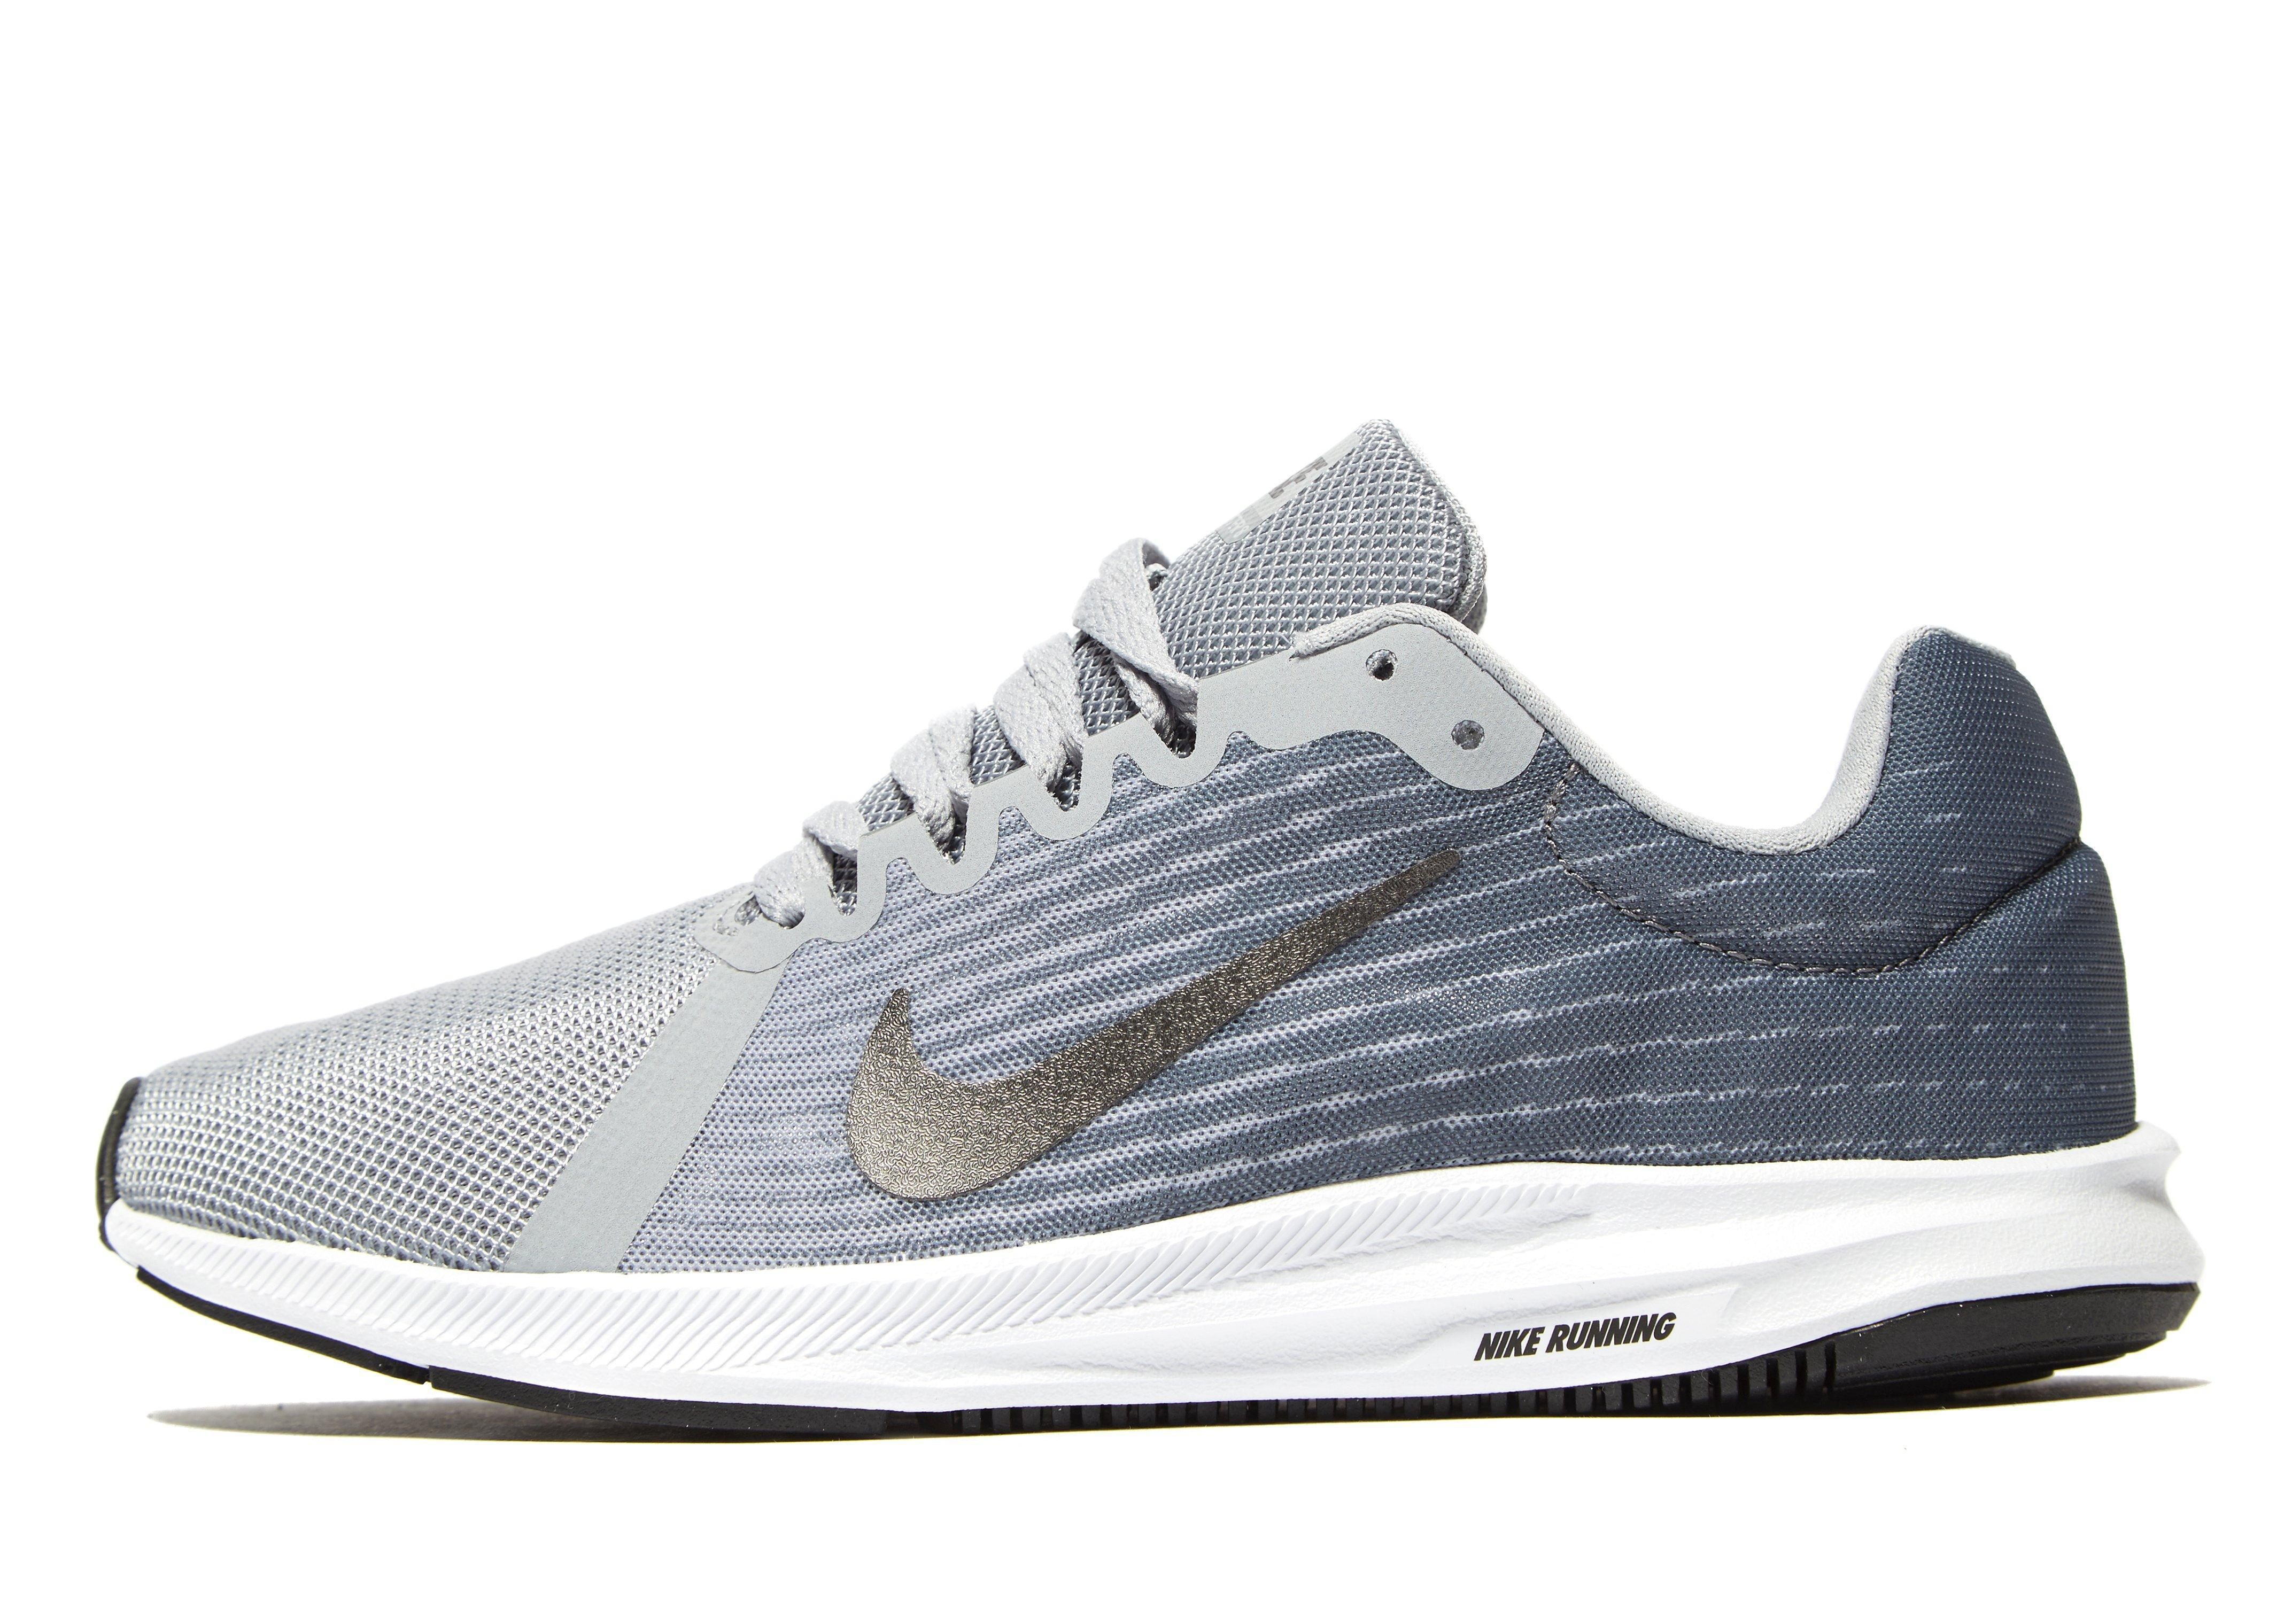 47a9ba67a413 Lyst - Nike Downshifter 7 in Gray for Men - Save 7%